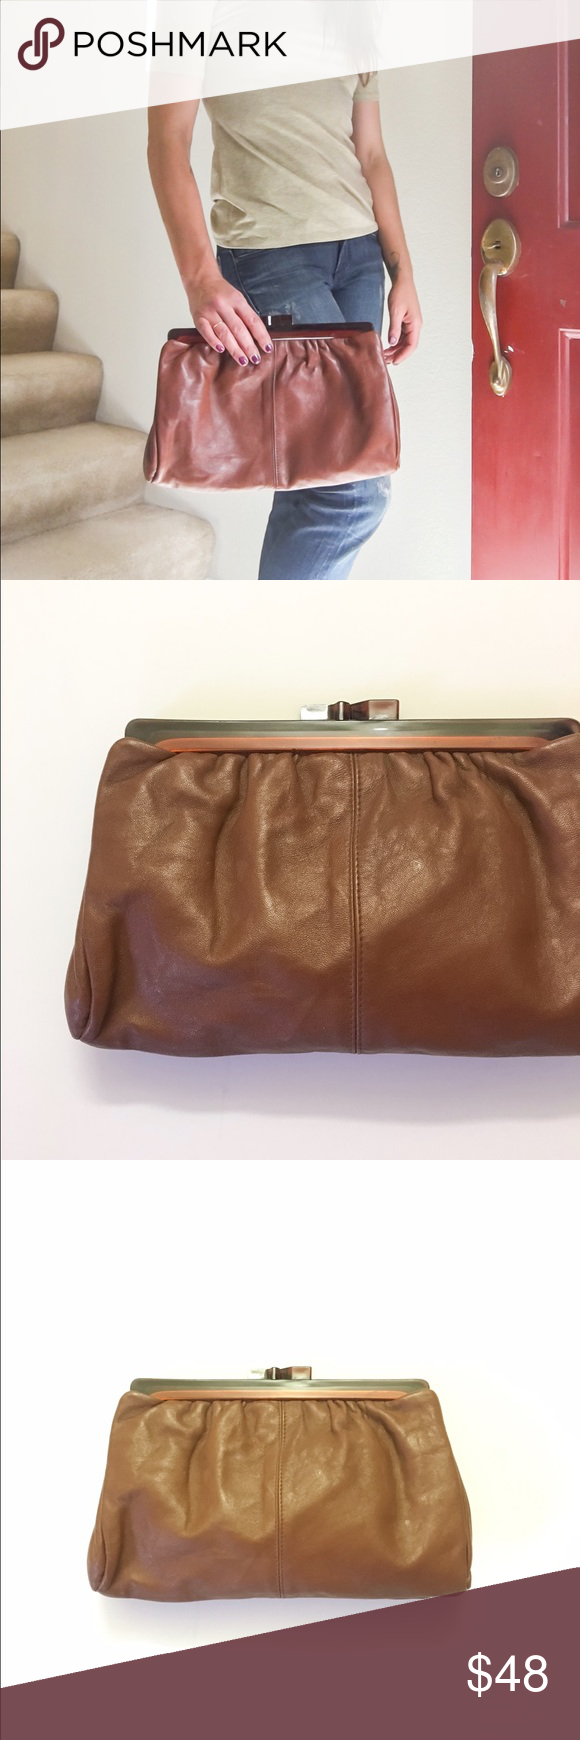 Vintage Oversized Leather Clutch Rad 1970's vintage leather clutch with a tortoise shell clip closure. The leather pleats at the top creating more volume to the bag (and room for your stuff 😉) Vintage Bags Clutches & Wristlets